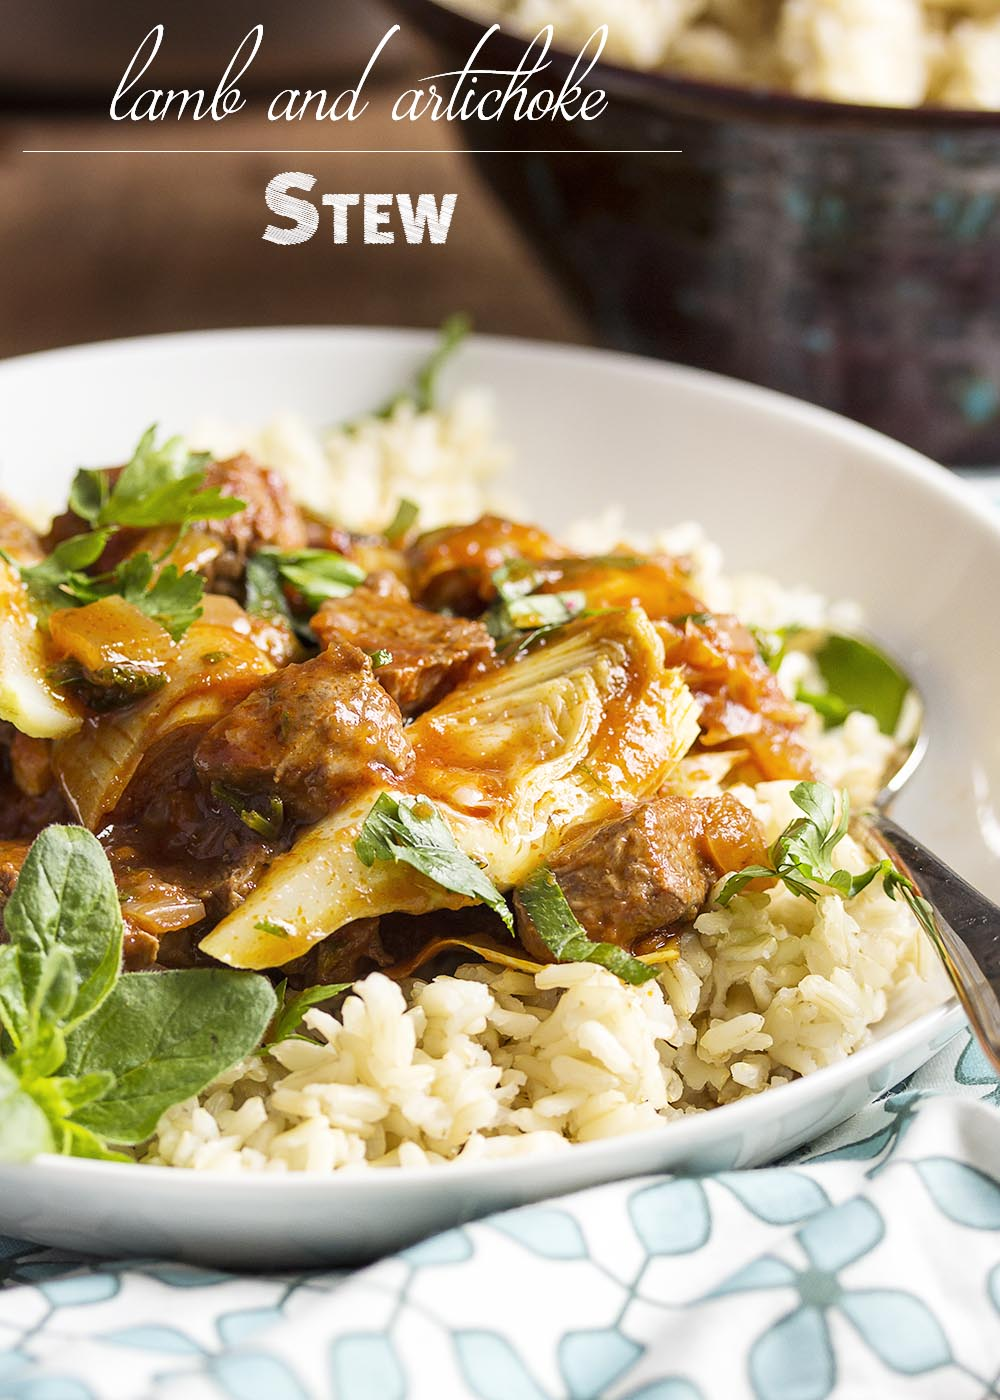 Lamb and Artichoke Stew - I love this Greek inspired spring stew full of lean lamb, artichokes, tomatoes, and plenty of fresh oregano. Serve it over rice or with some crusty bread to soak up the sauce. | justalittlebitofbacon.com